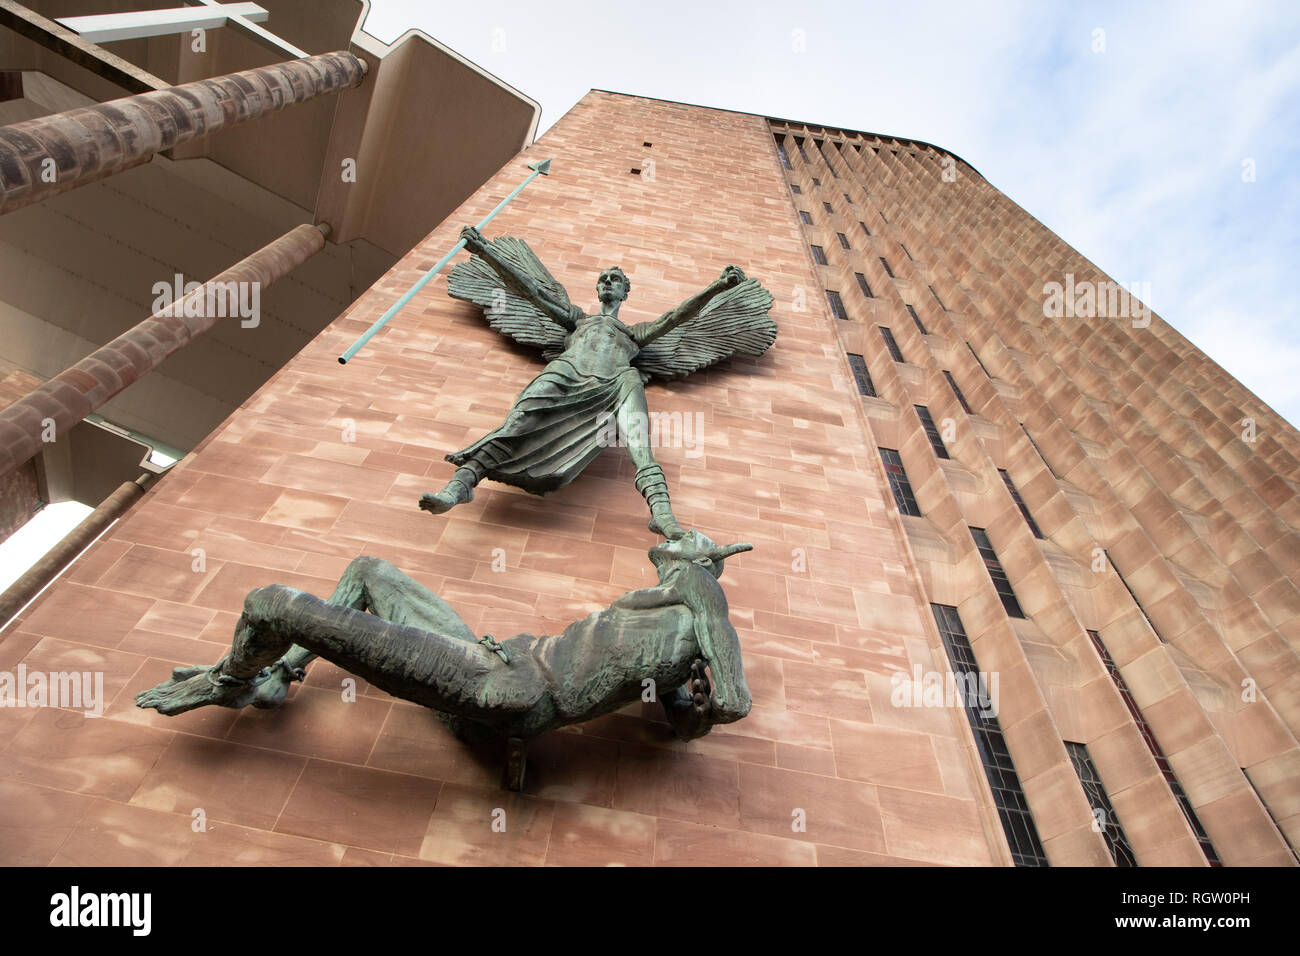 St Michael's victory over the Devil is portrayed in this statue by Sir Jacob Epstein, mounted on the side of the new Coventry Cathedral. - Stock Image